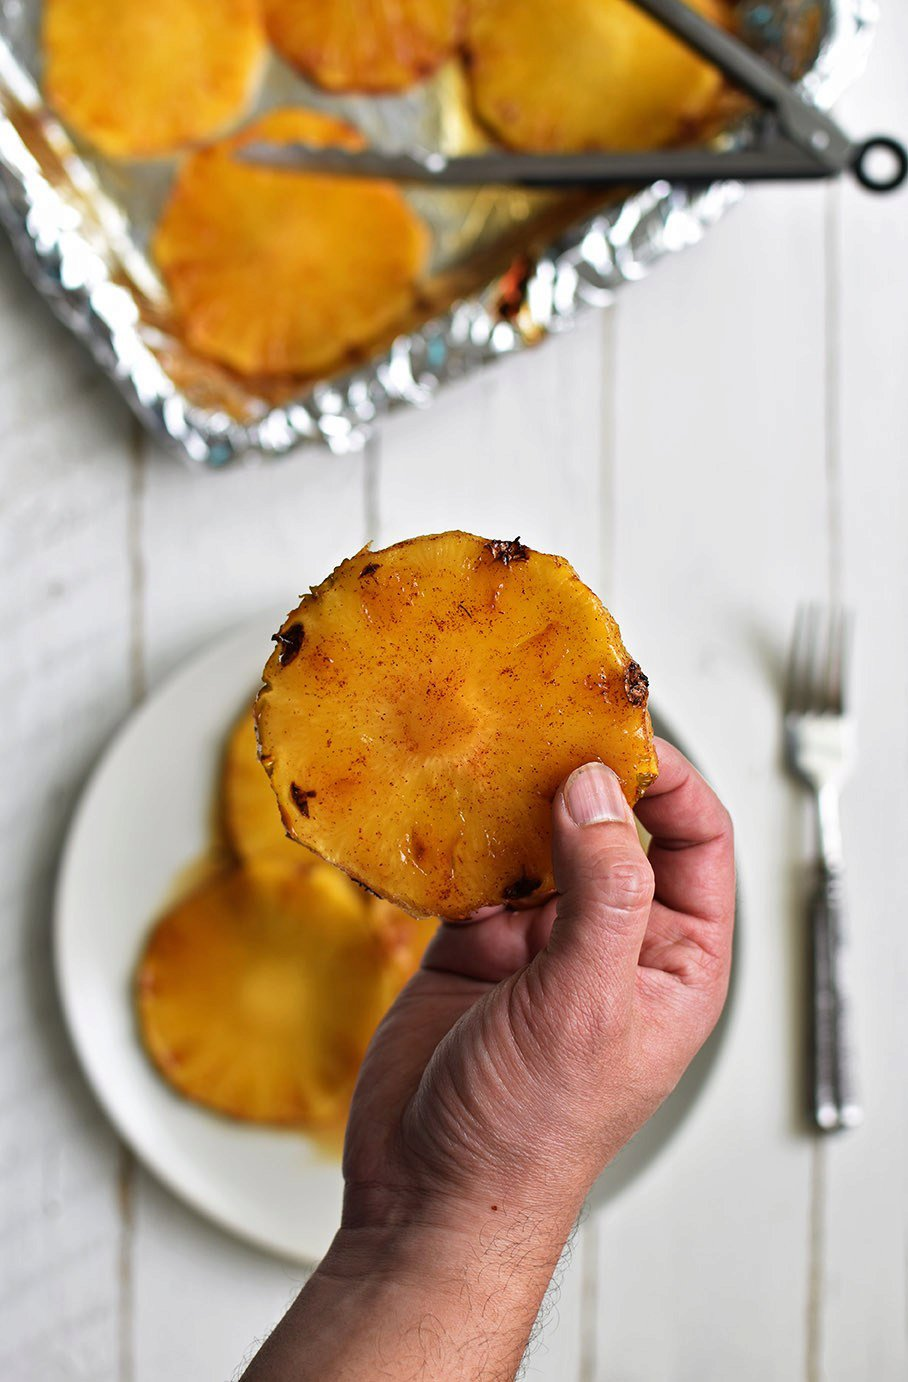 Grilled Pineapple with Cinnamon and Brown Sugar